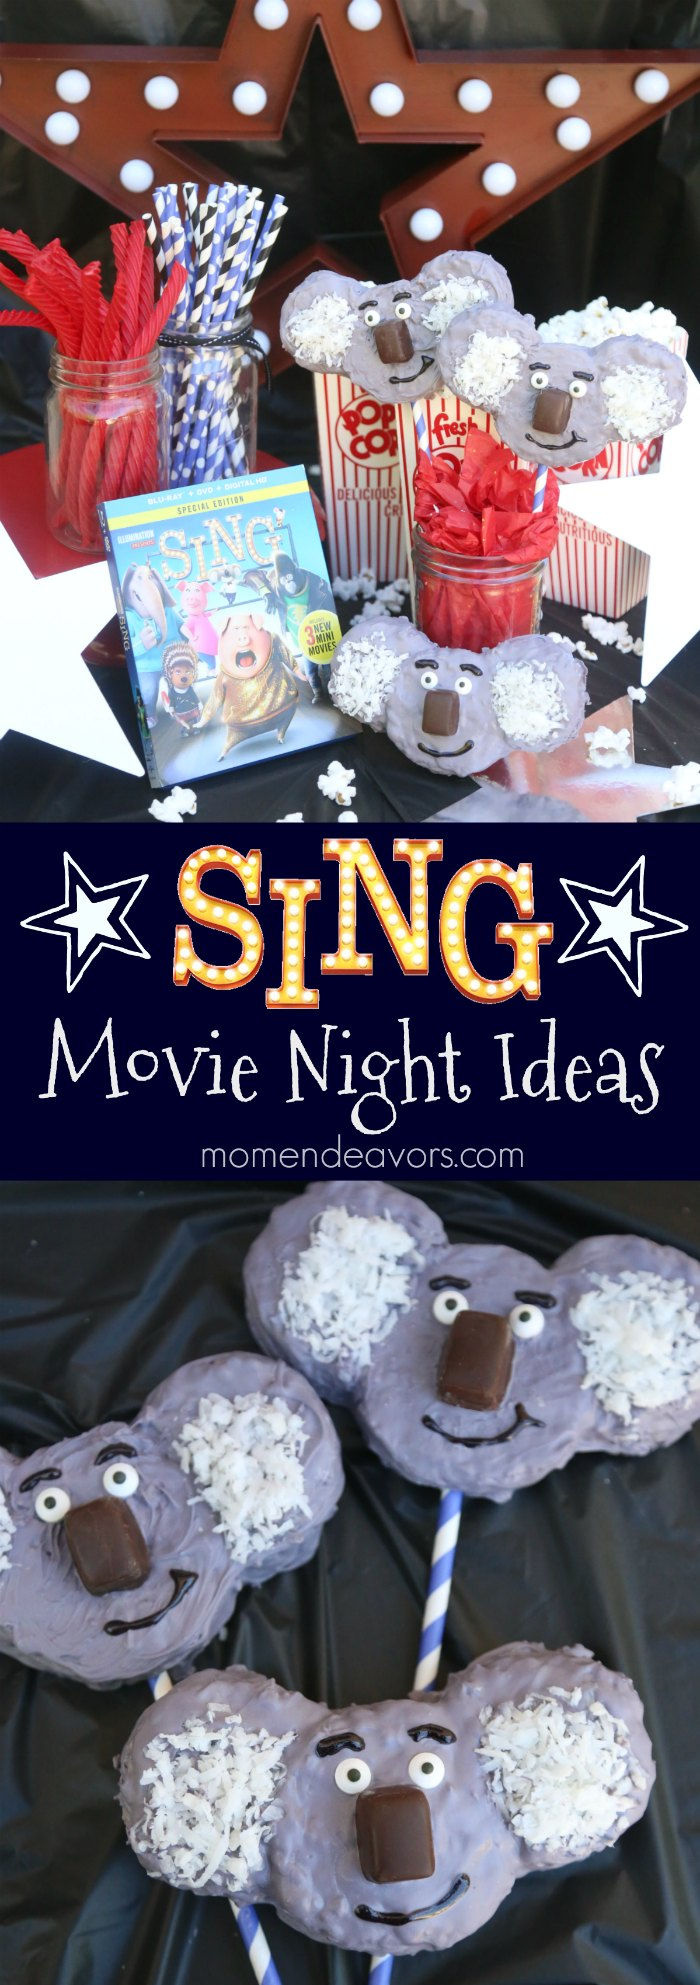 movie night sing diy koala krispy treats party birthday universal nights momendeavors dvd themes moon buster own